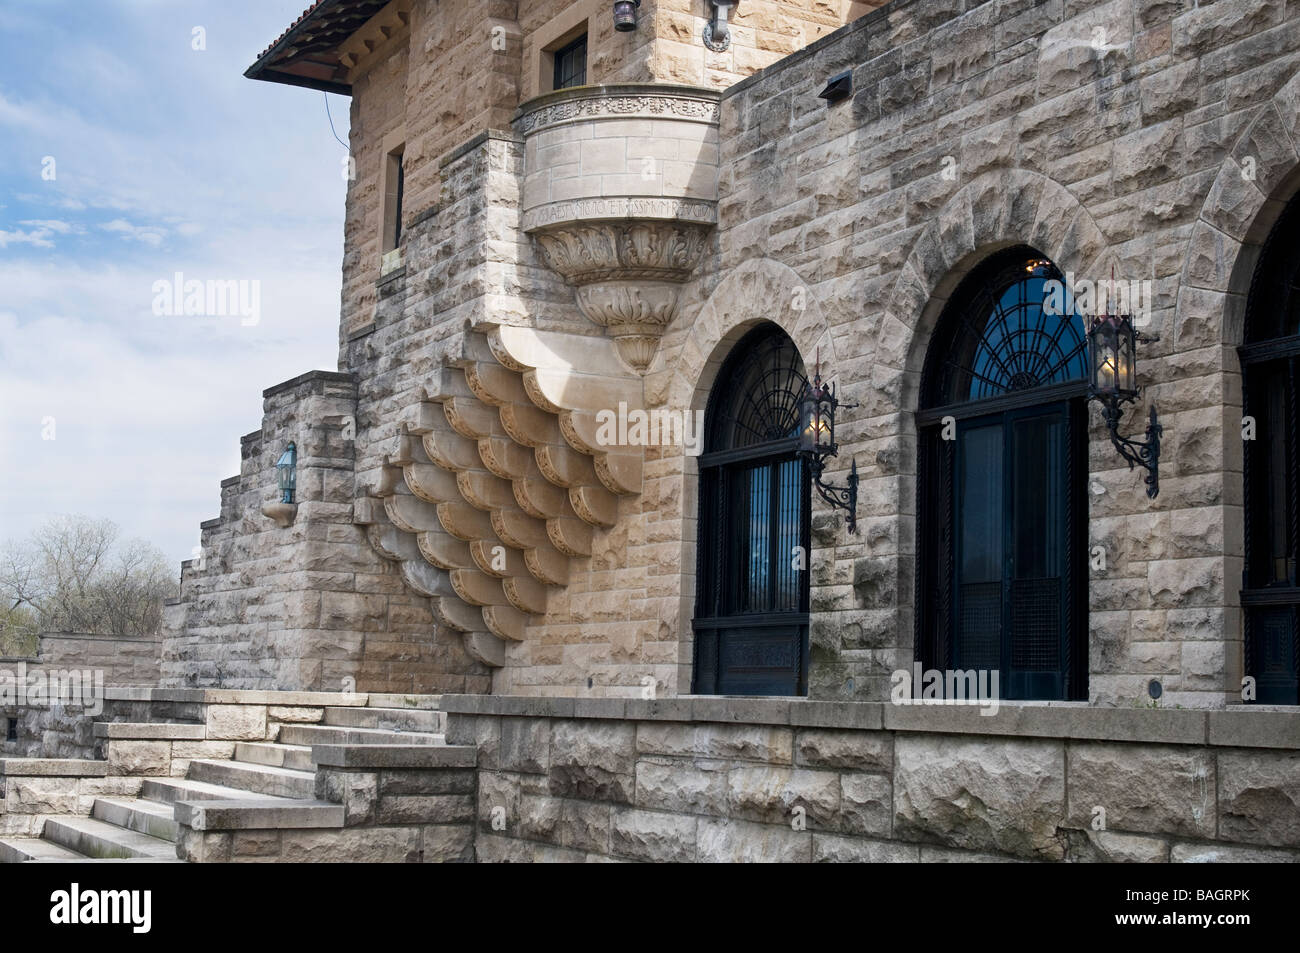 North view of a part of the Marland Mansion in Ponca City, Oklahoma, USA. - Stock Image